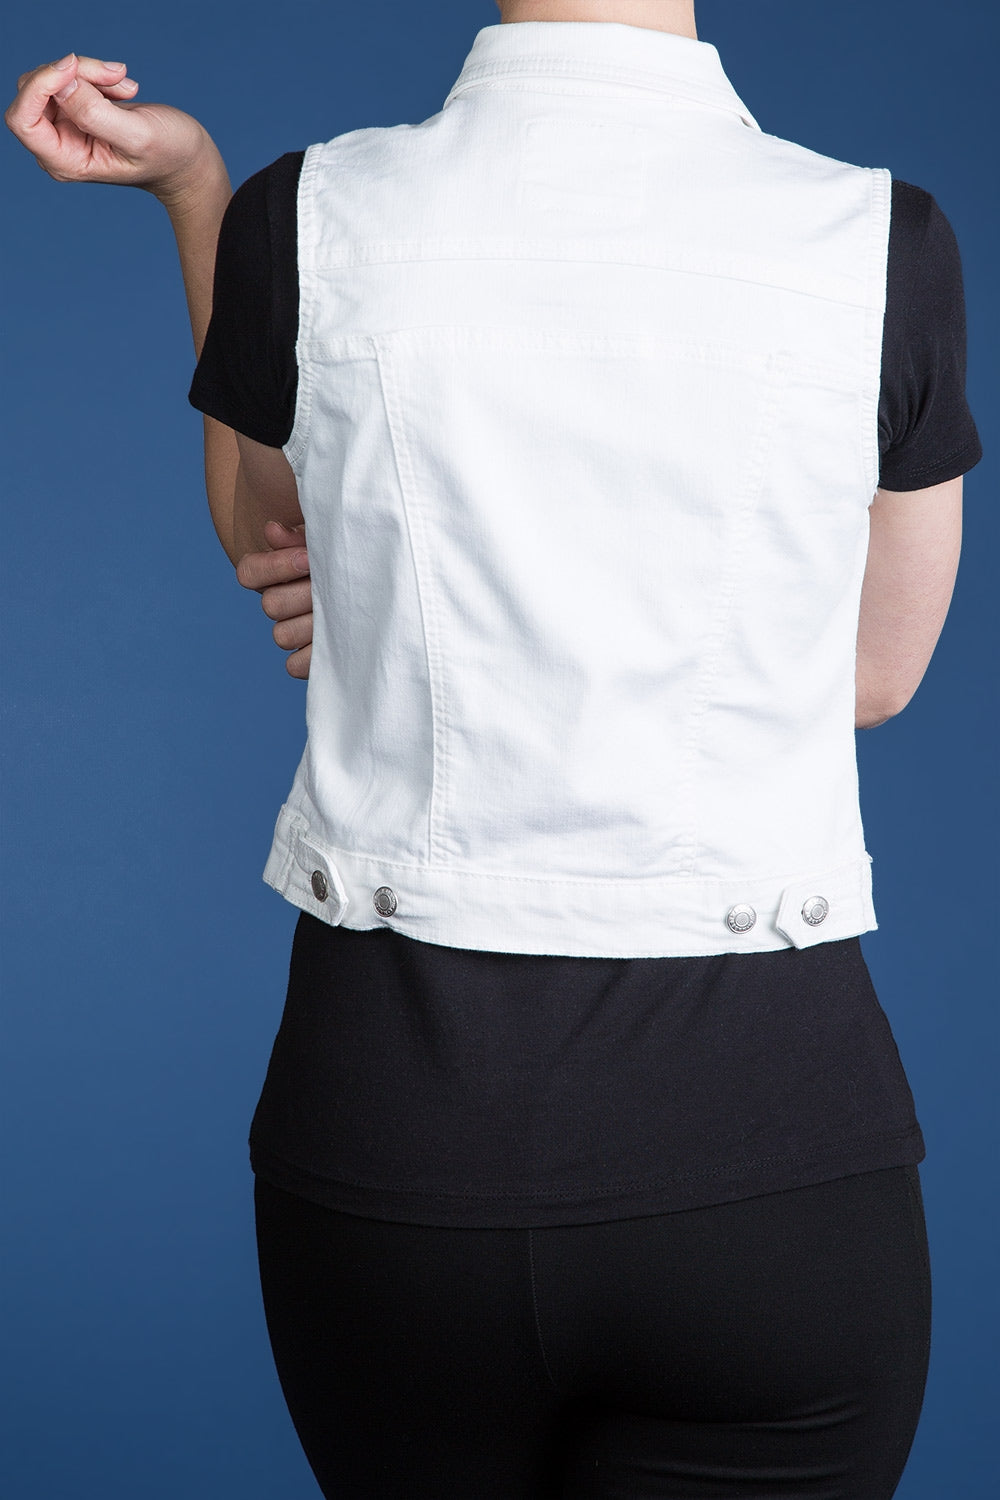 Type 4 Invested Interest Vest in White